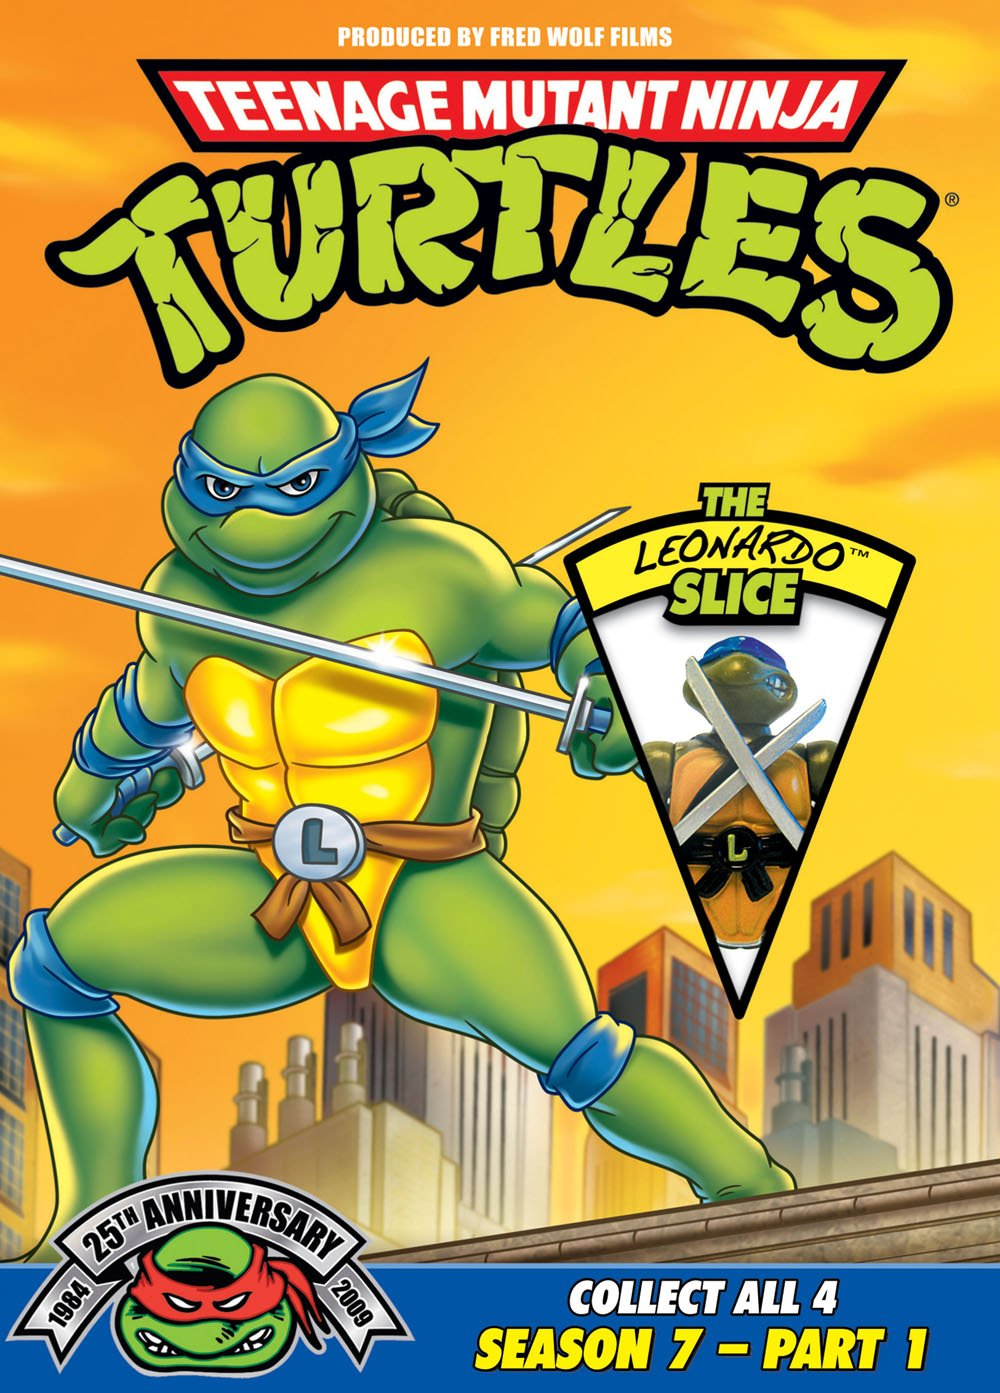 Amazon.com: Teenage Mutant Ninja Turtles: Season 7, Pt. 1 ...